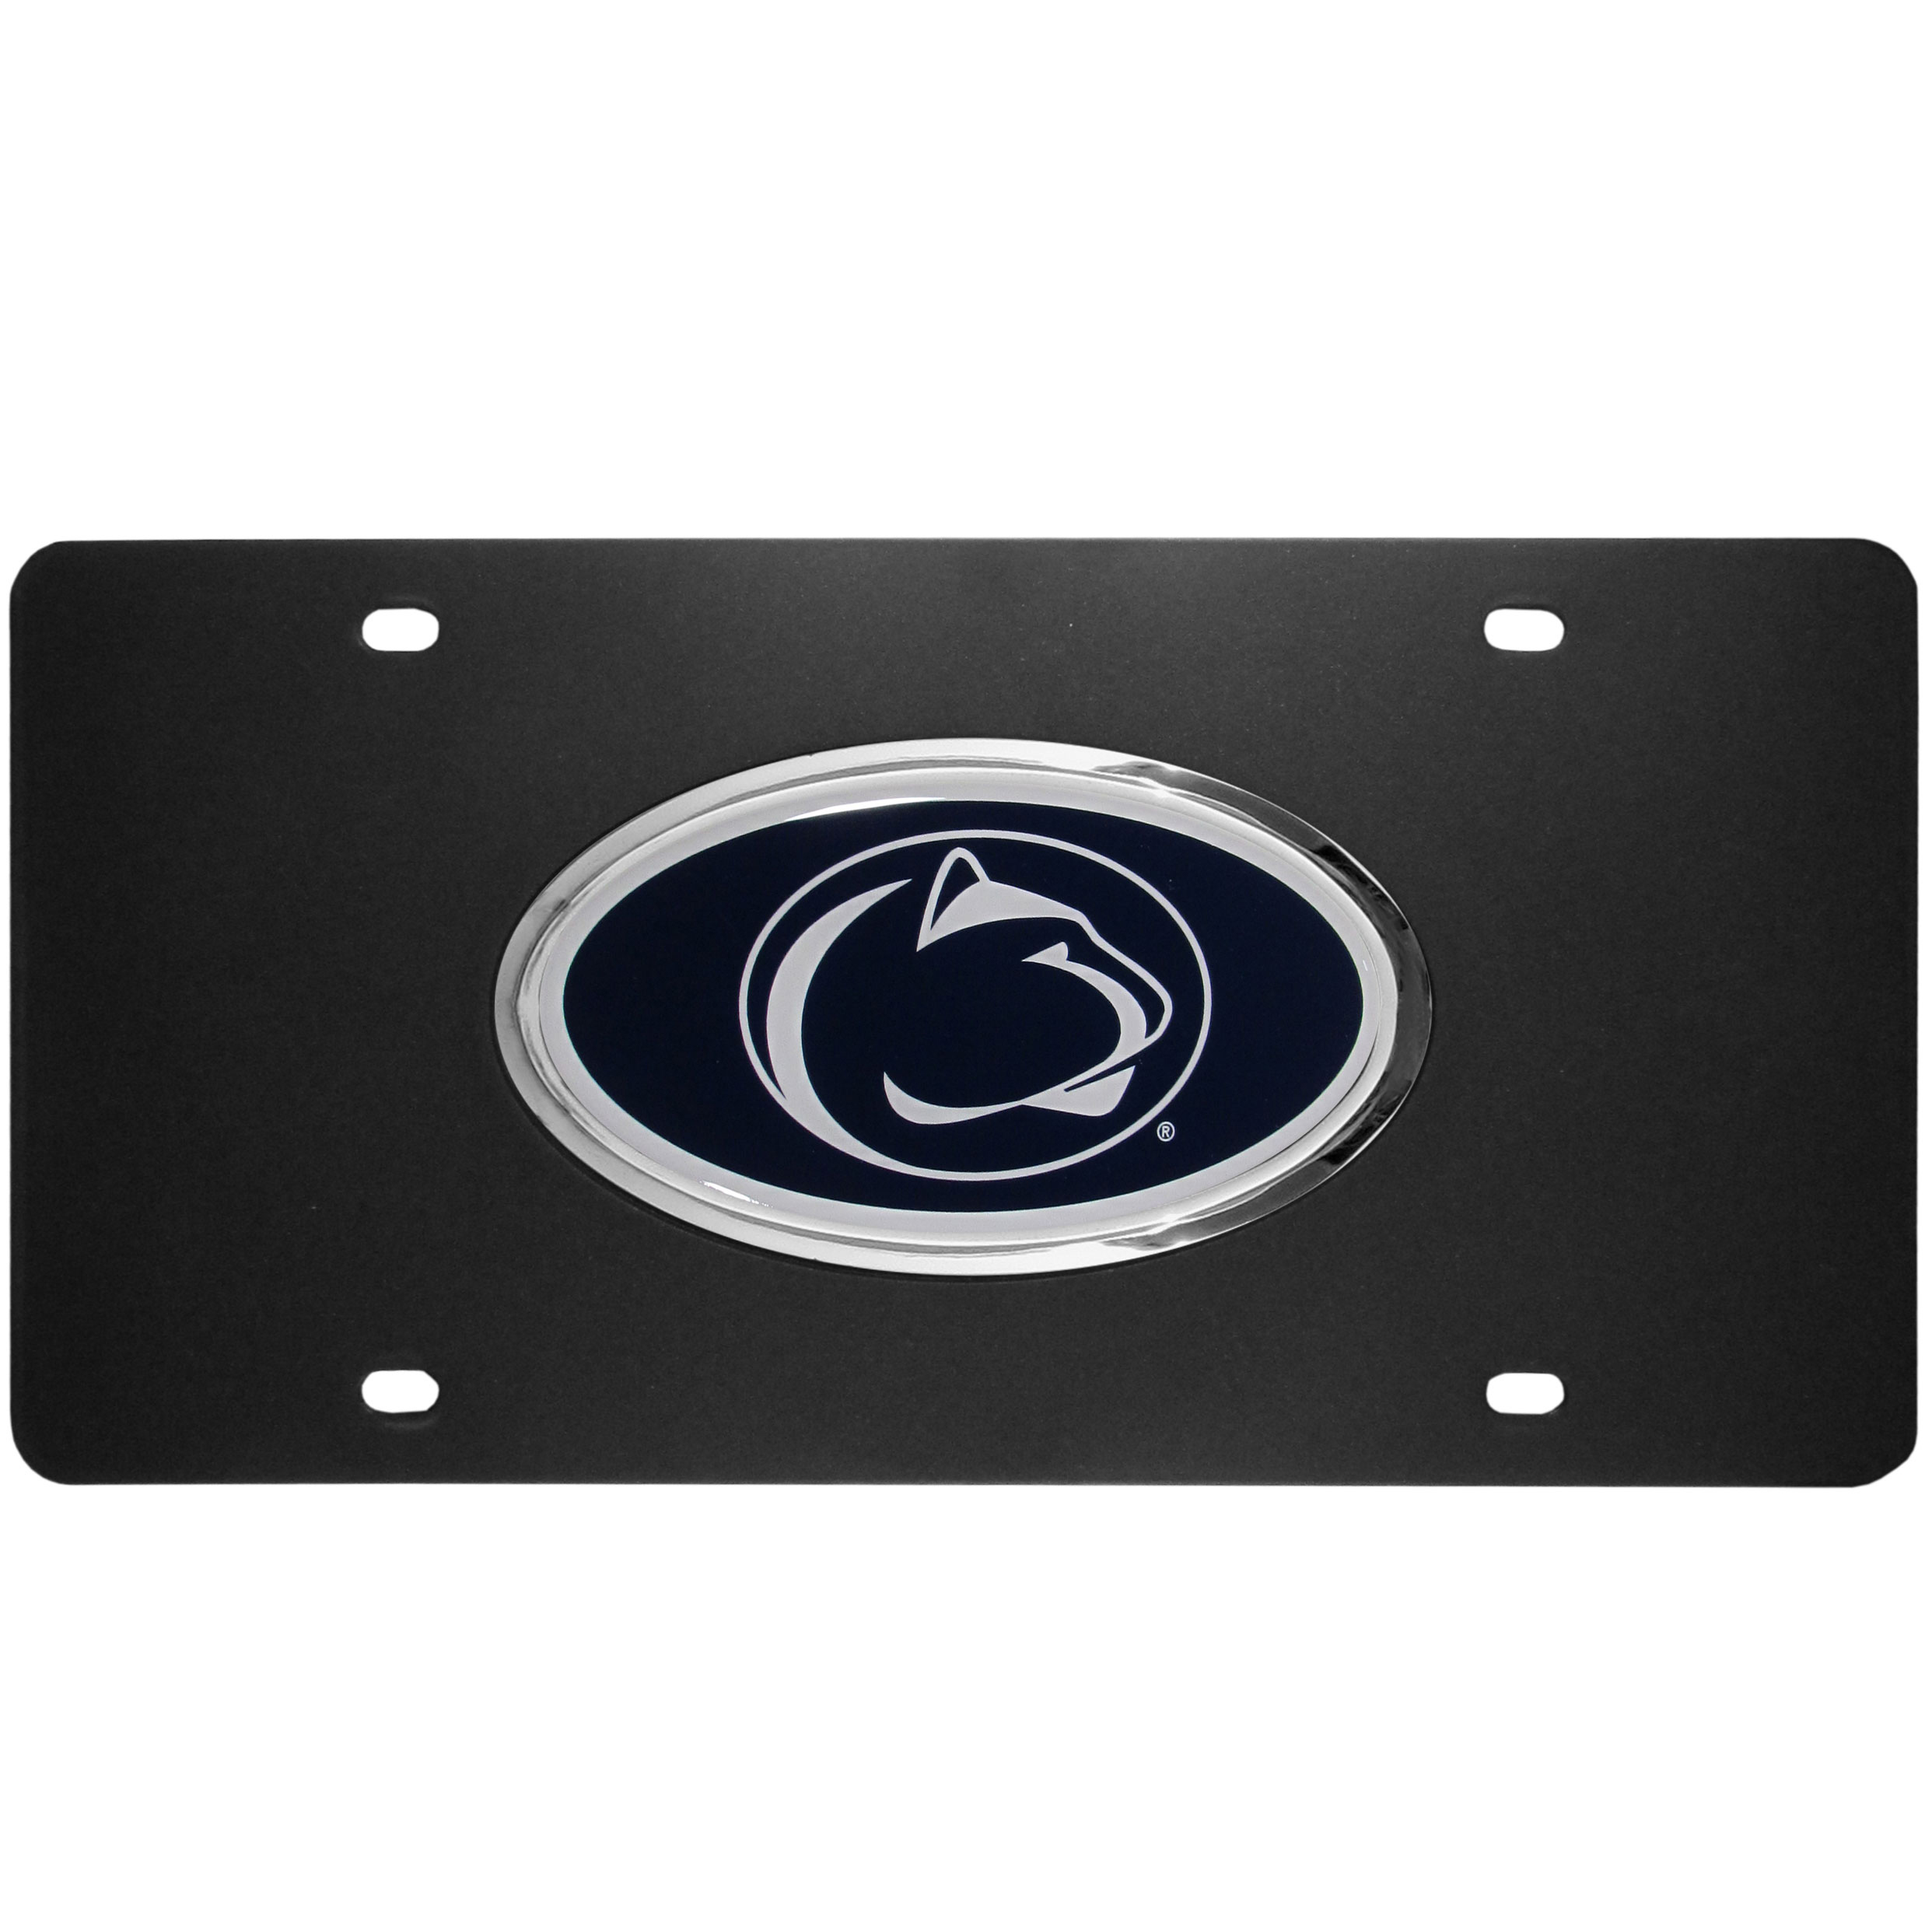 Penn St. Nittany Lions Acrylic License Plate - Our Penn St. Nittany Lions acrylic license plate is a step above the rest. It is made of thick, durable acrylic with a matte black finish and raised chrome saddle for the extra large team emblem.